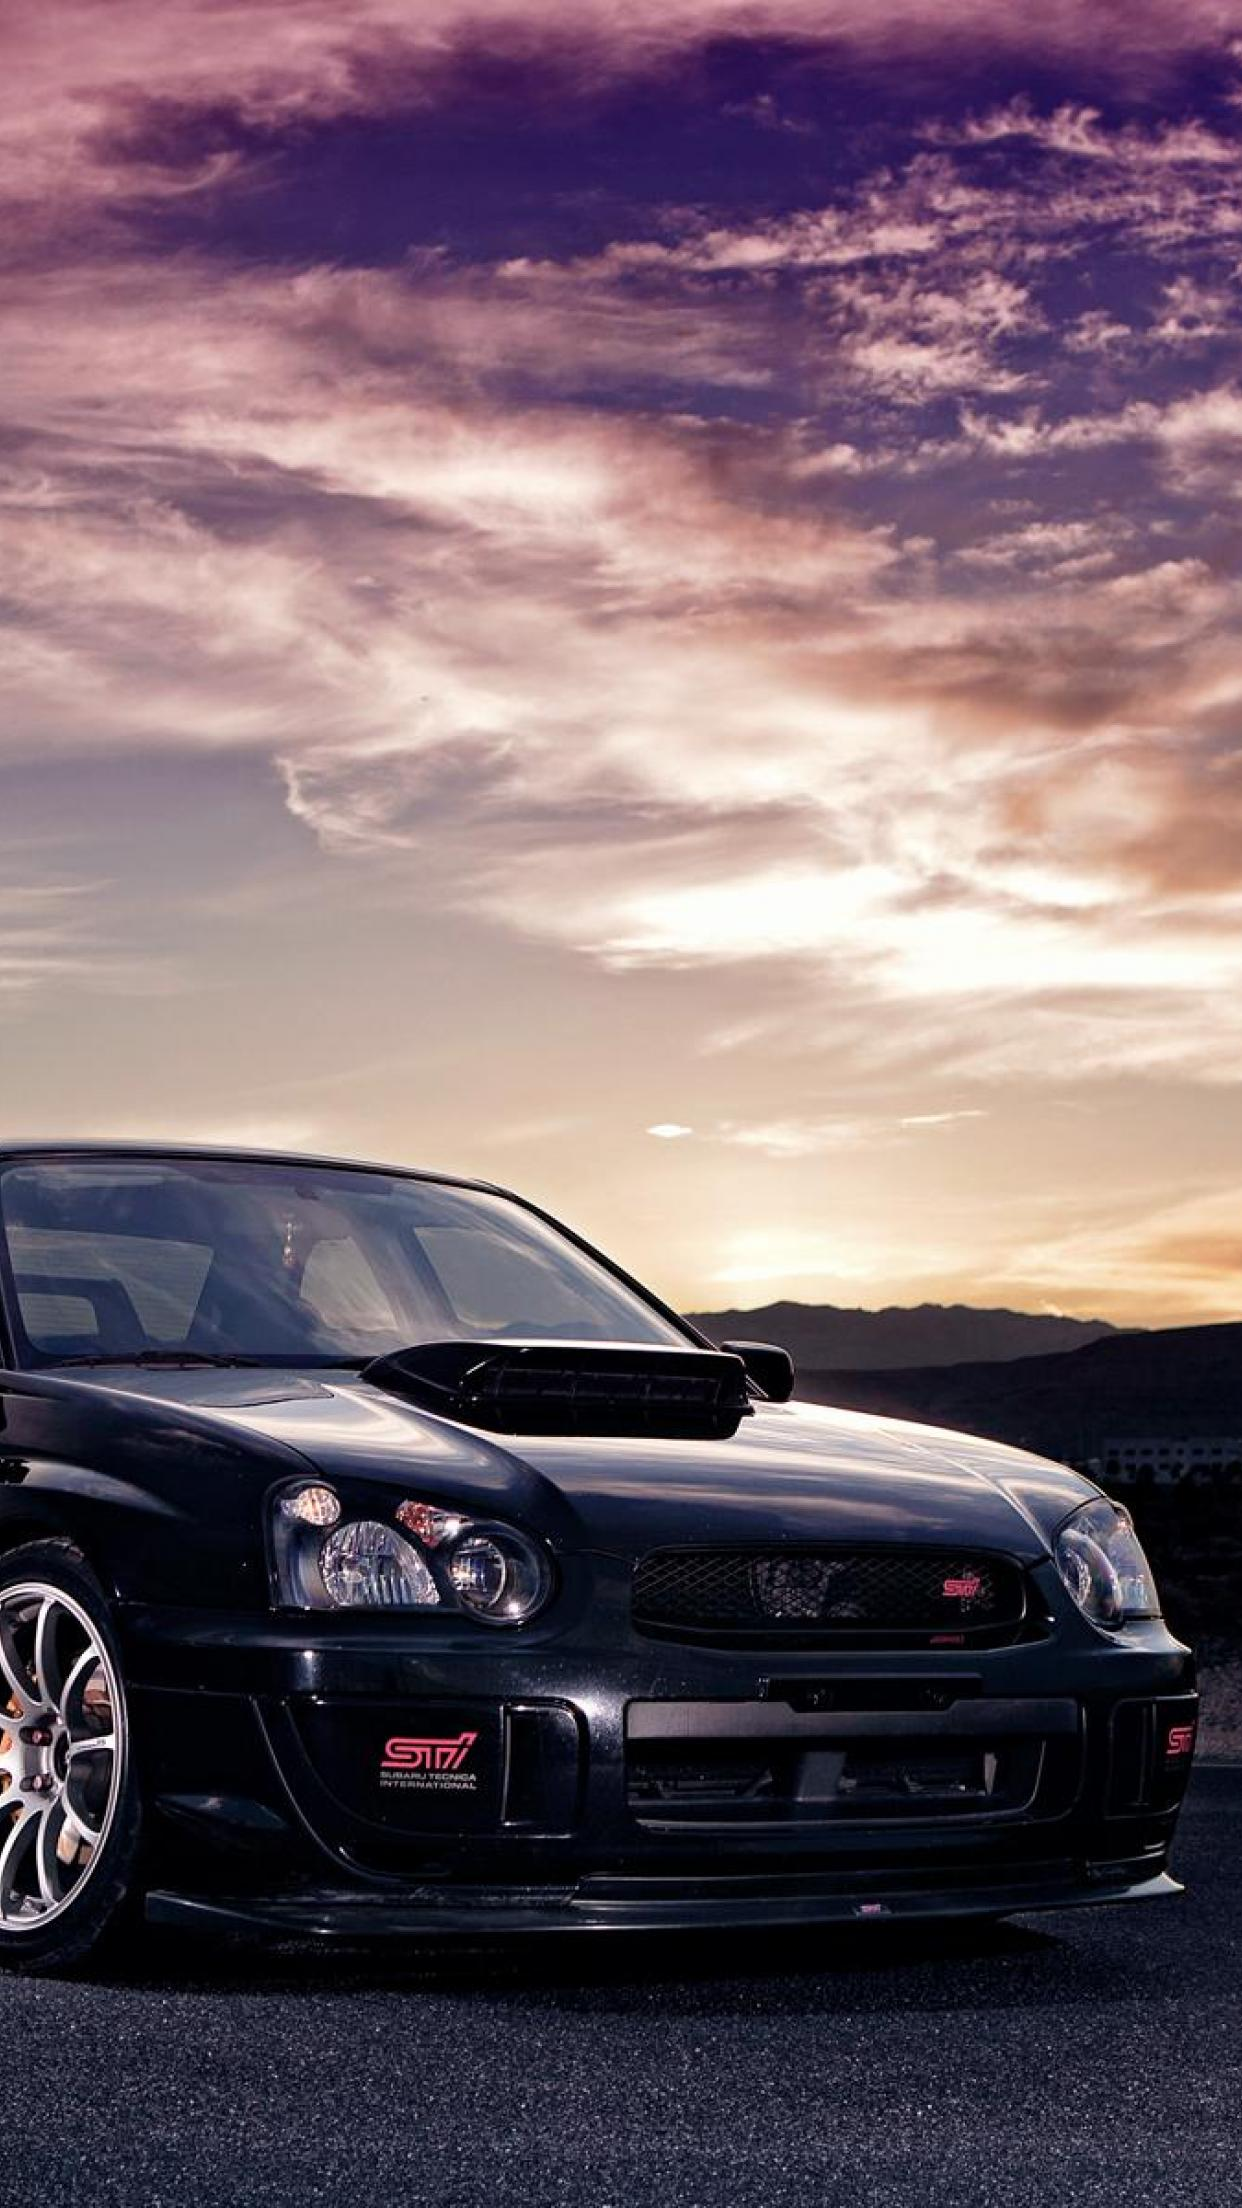 Free Download Subaru Wrx Sti Impreza Cars Subaru Hd Wallpapers